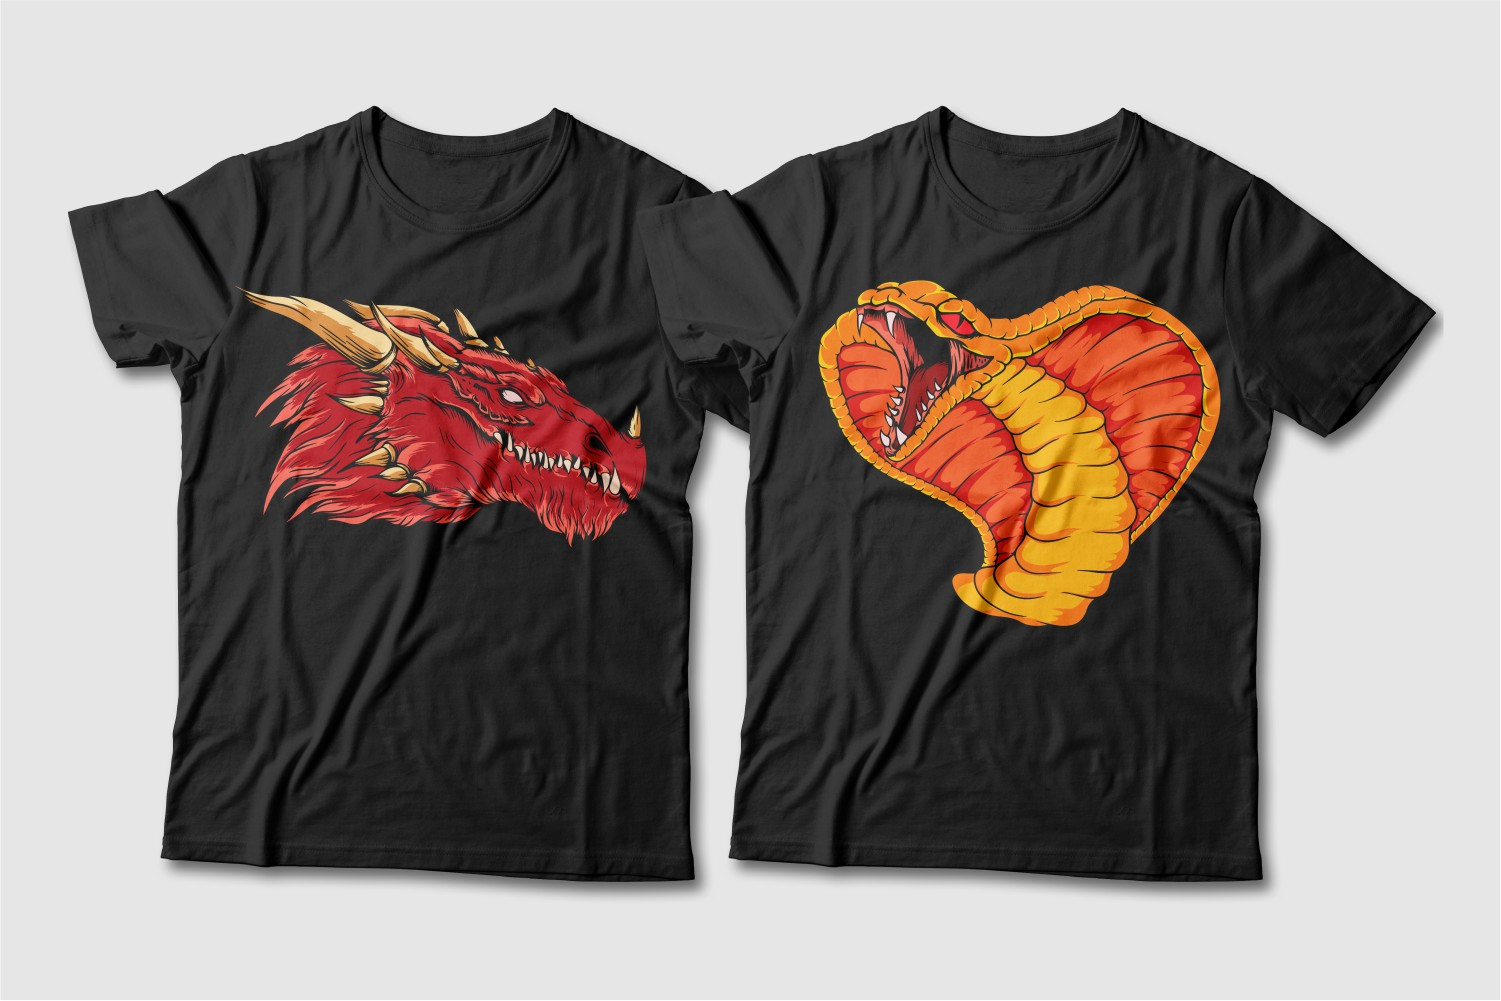 Black T-shirts featuring a red horned dragon and an orange cobra.